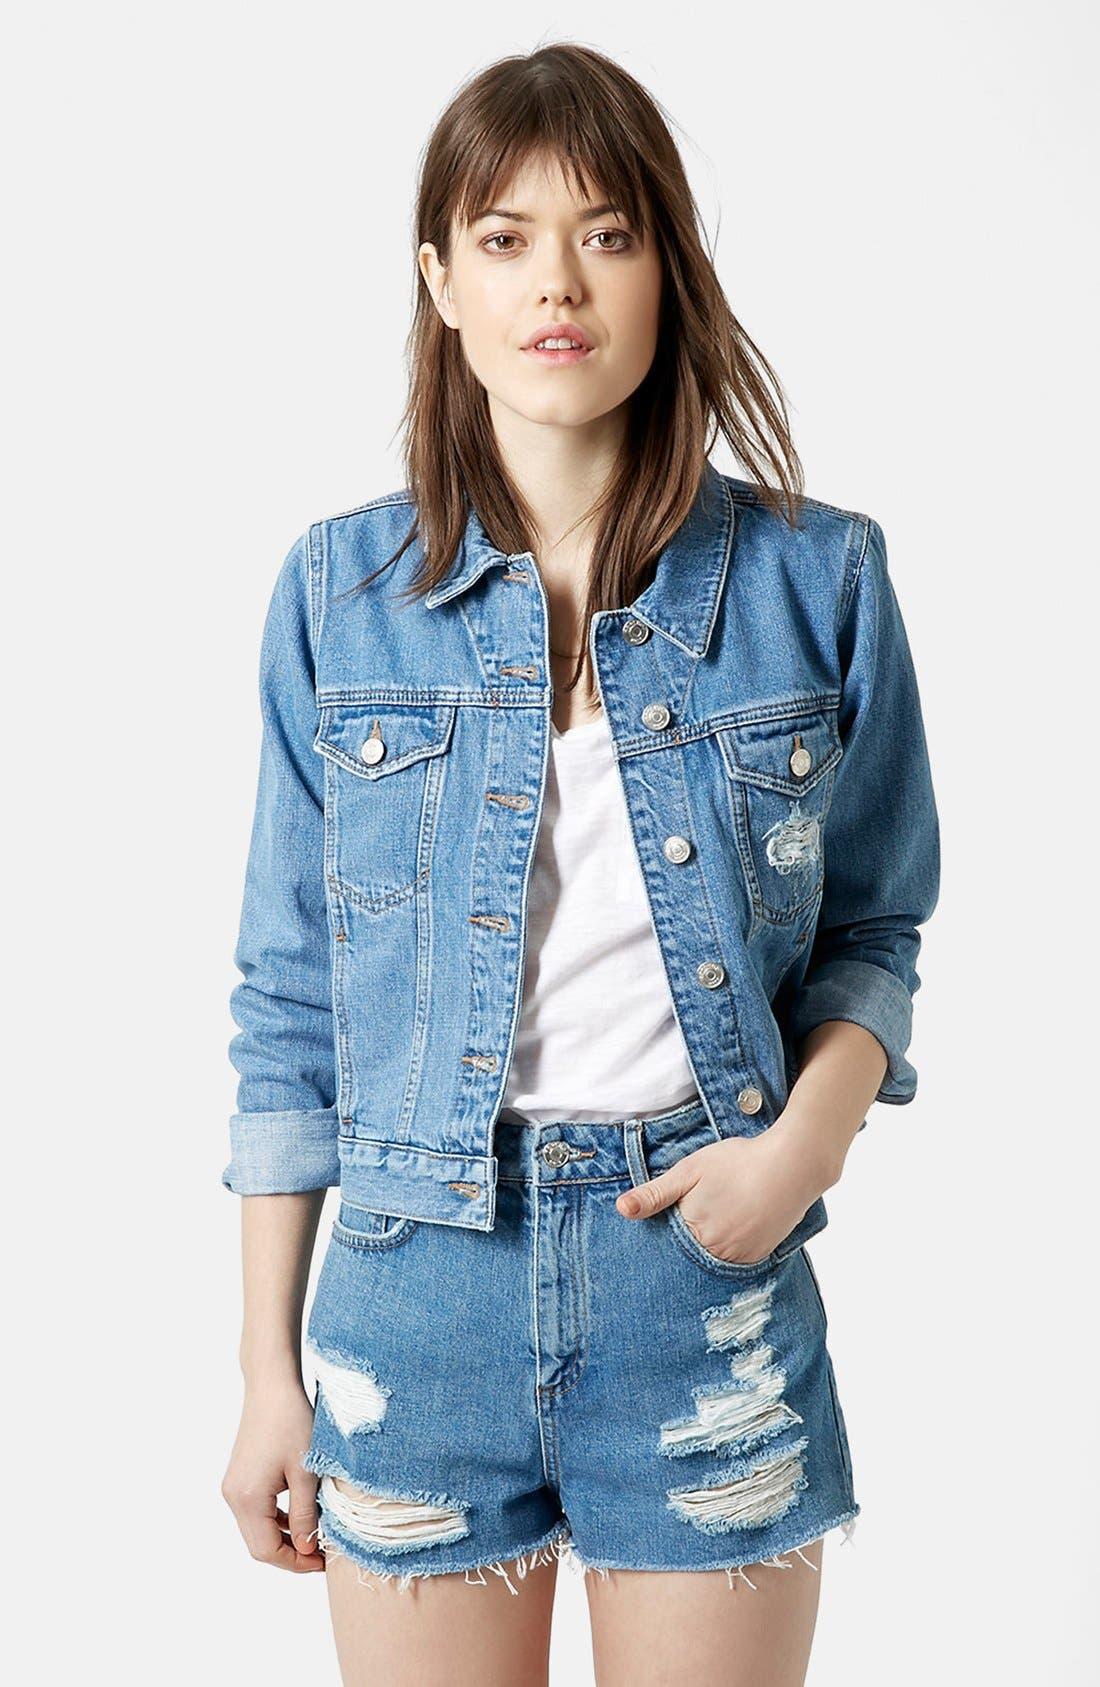 Find great deals on eBay for jean jackets for women. Shop with confidence.